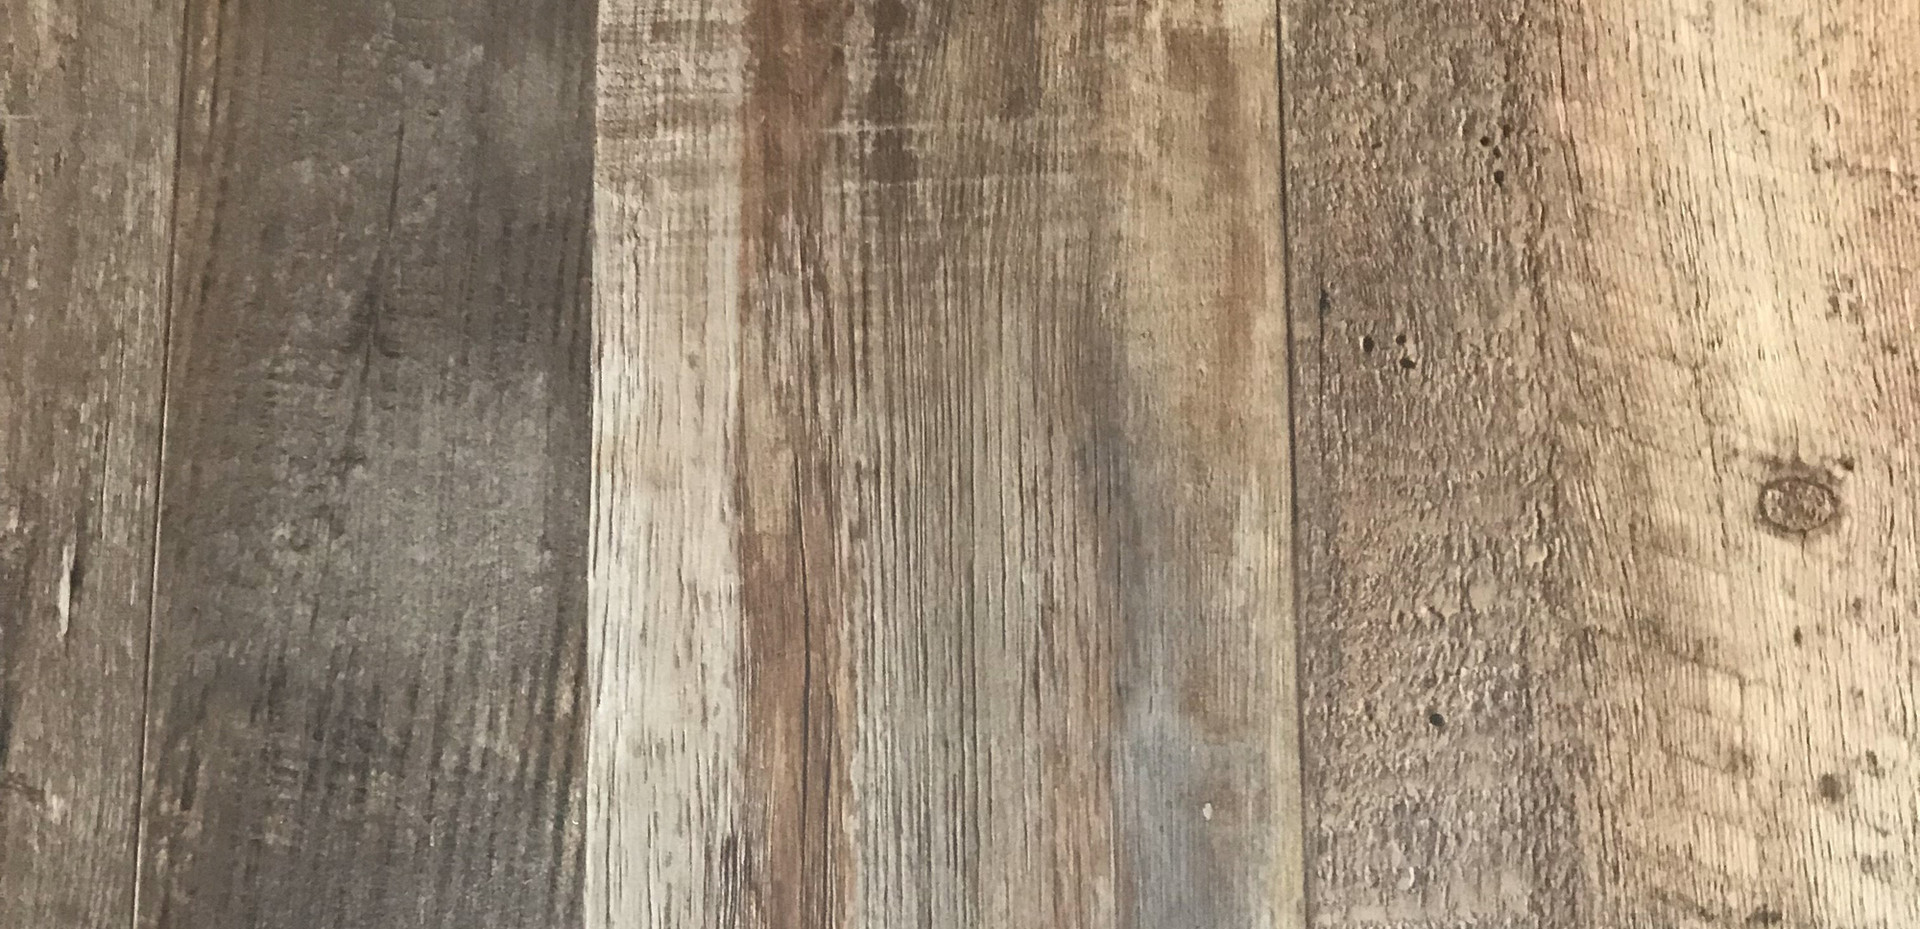 YD Deluxe RVC Reclaimed Pine #303